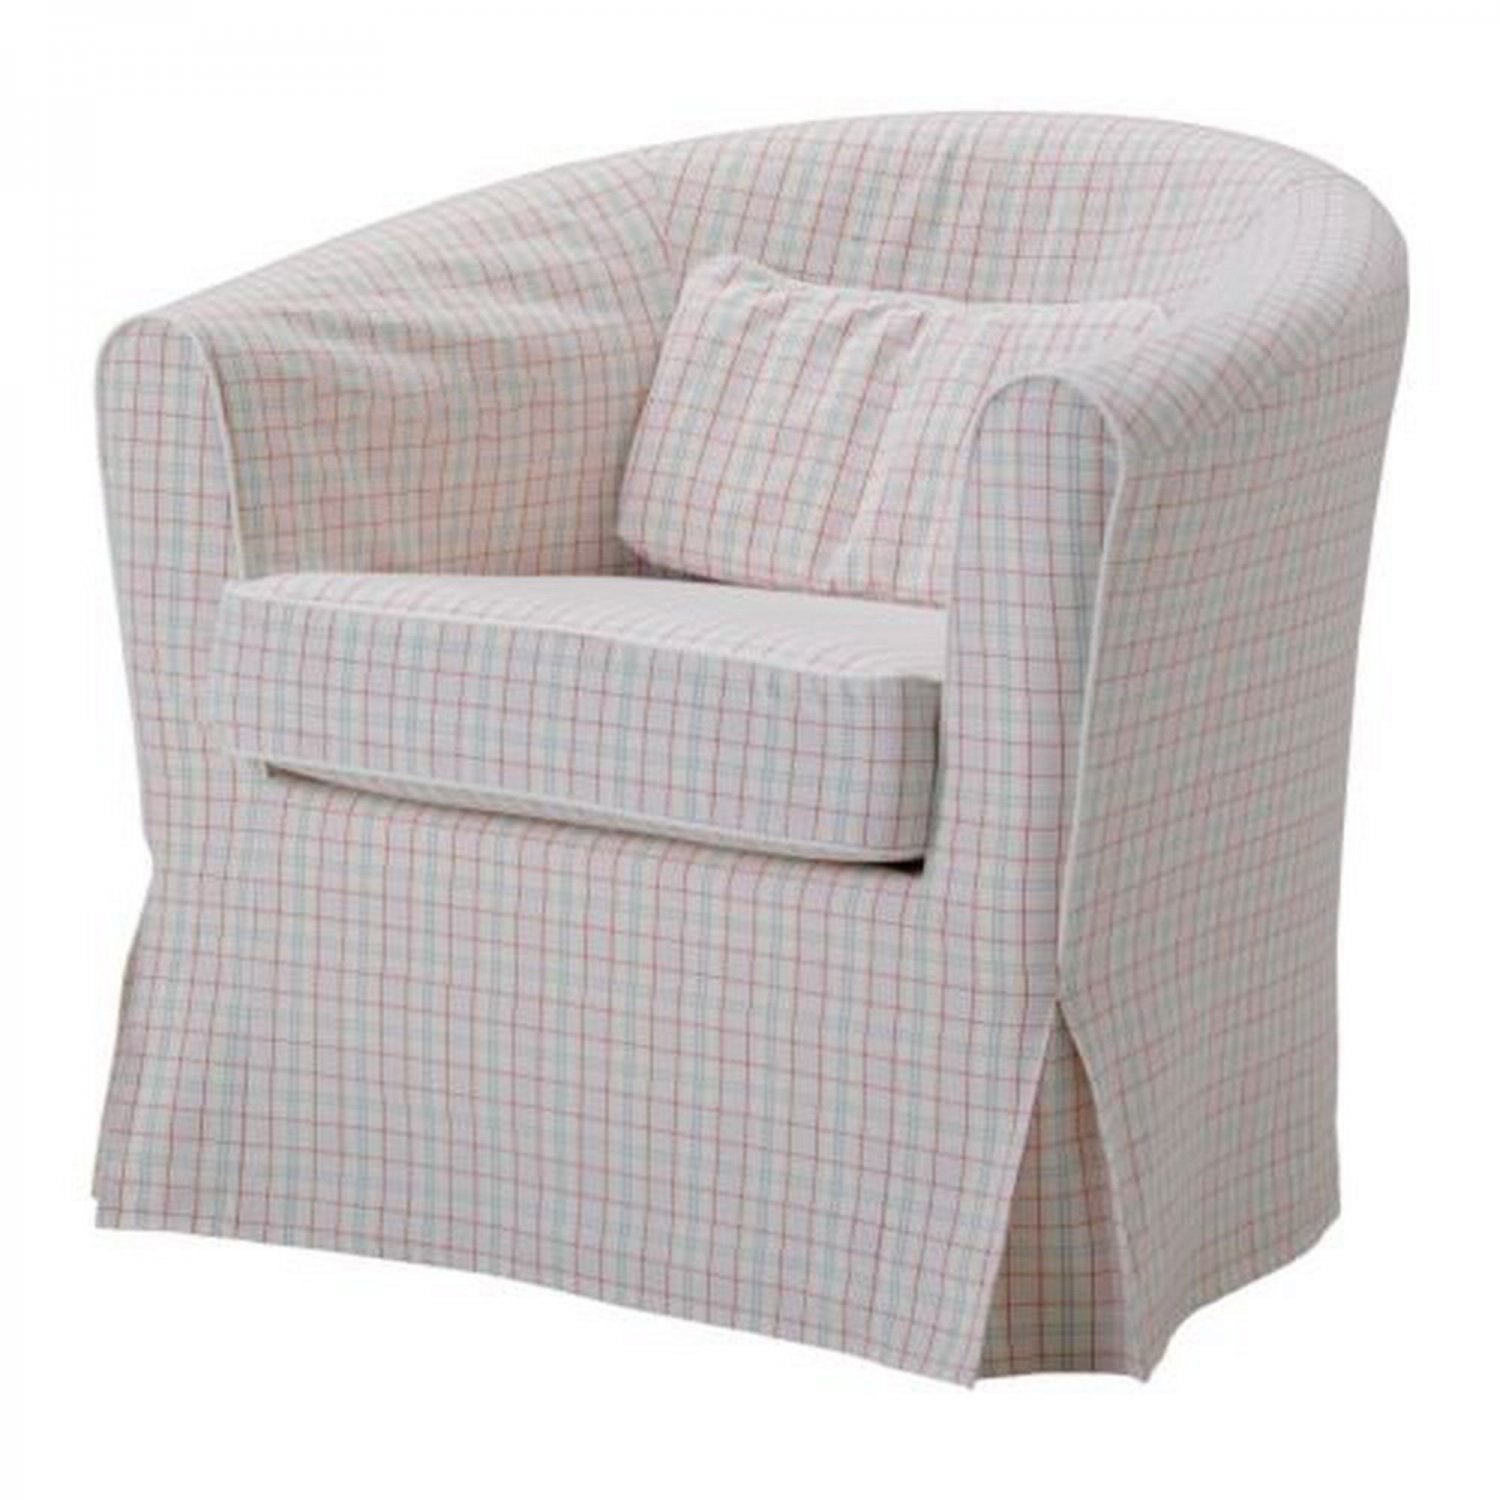 ikea ektorp tullsta armchair slipcover chair cover ruda multi pink green plaid checked. Black Bedroom Furniture Sets. Home Design Ideas